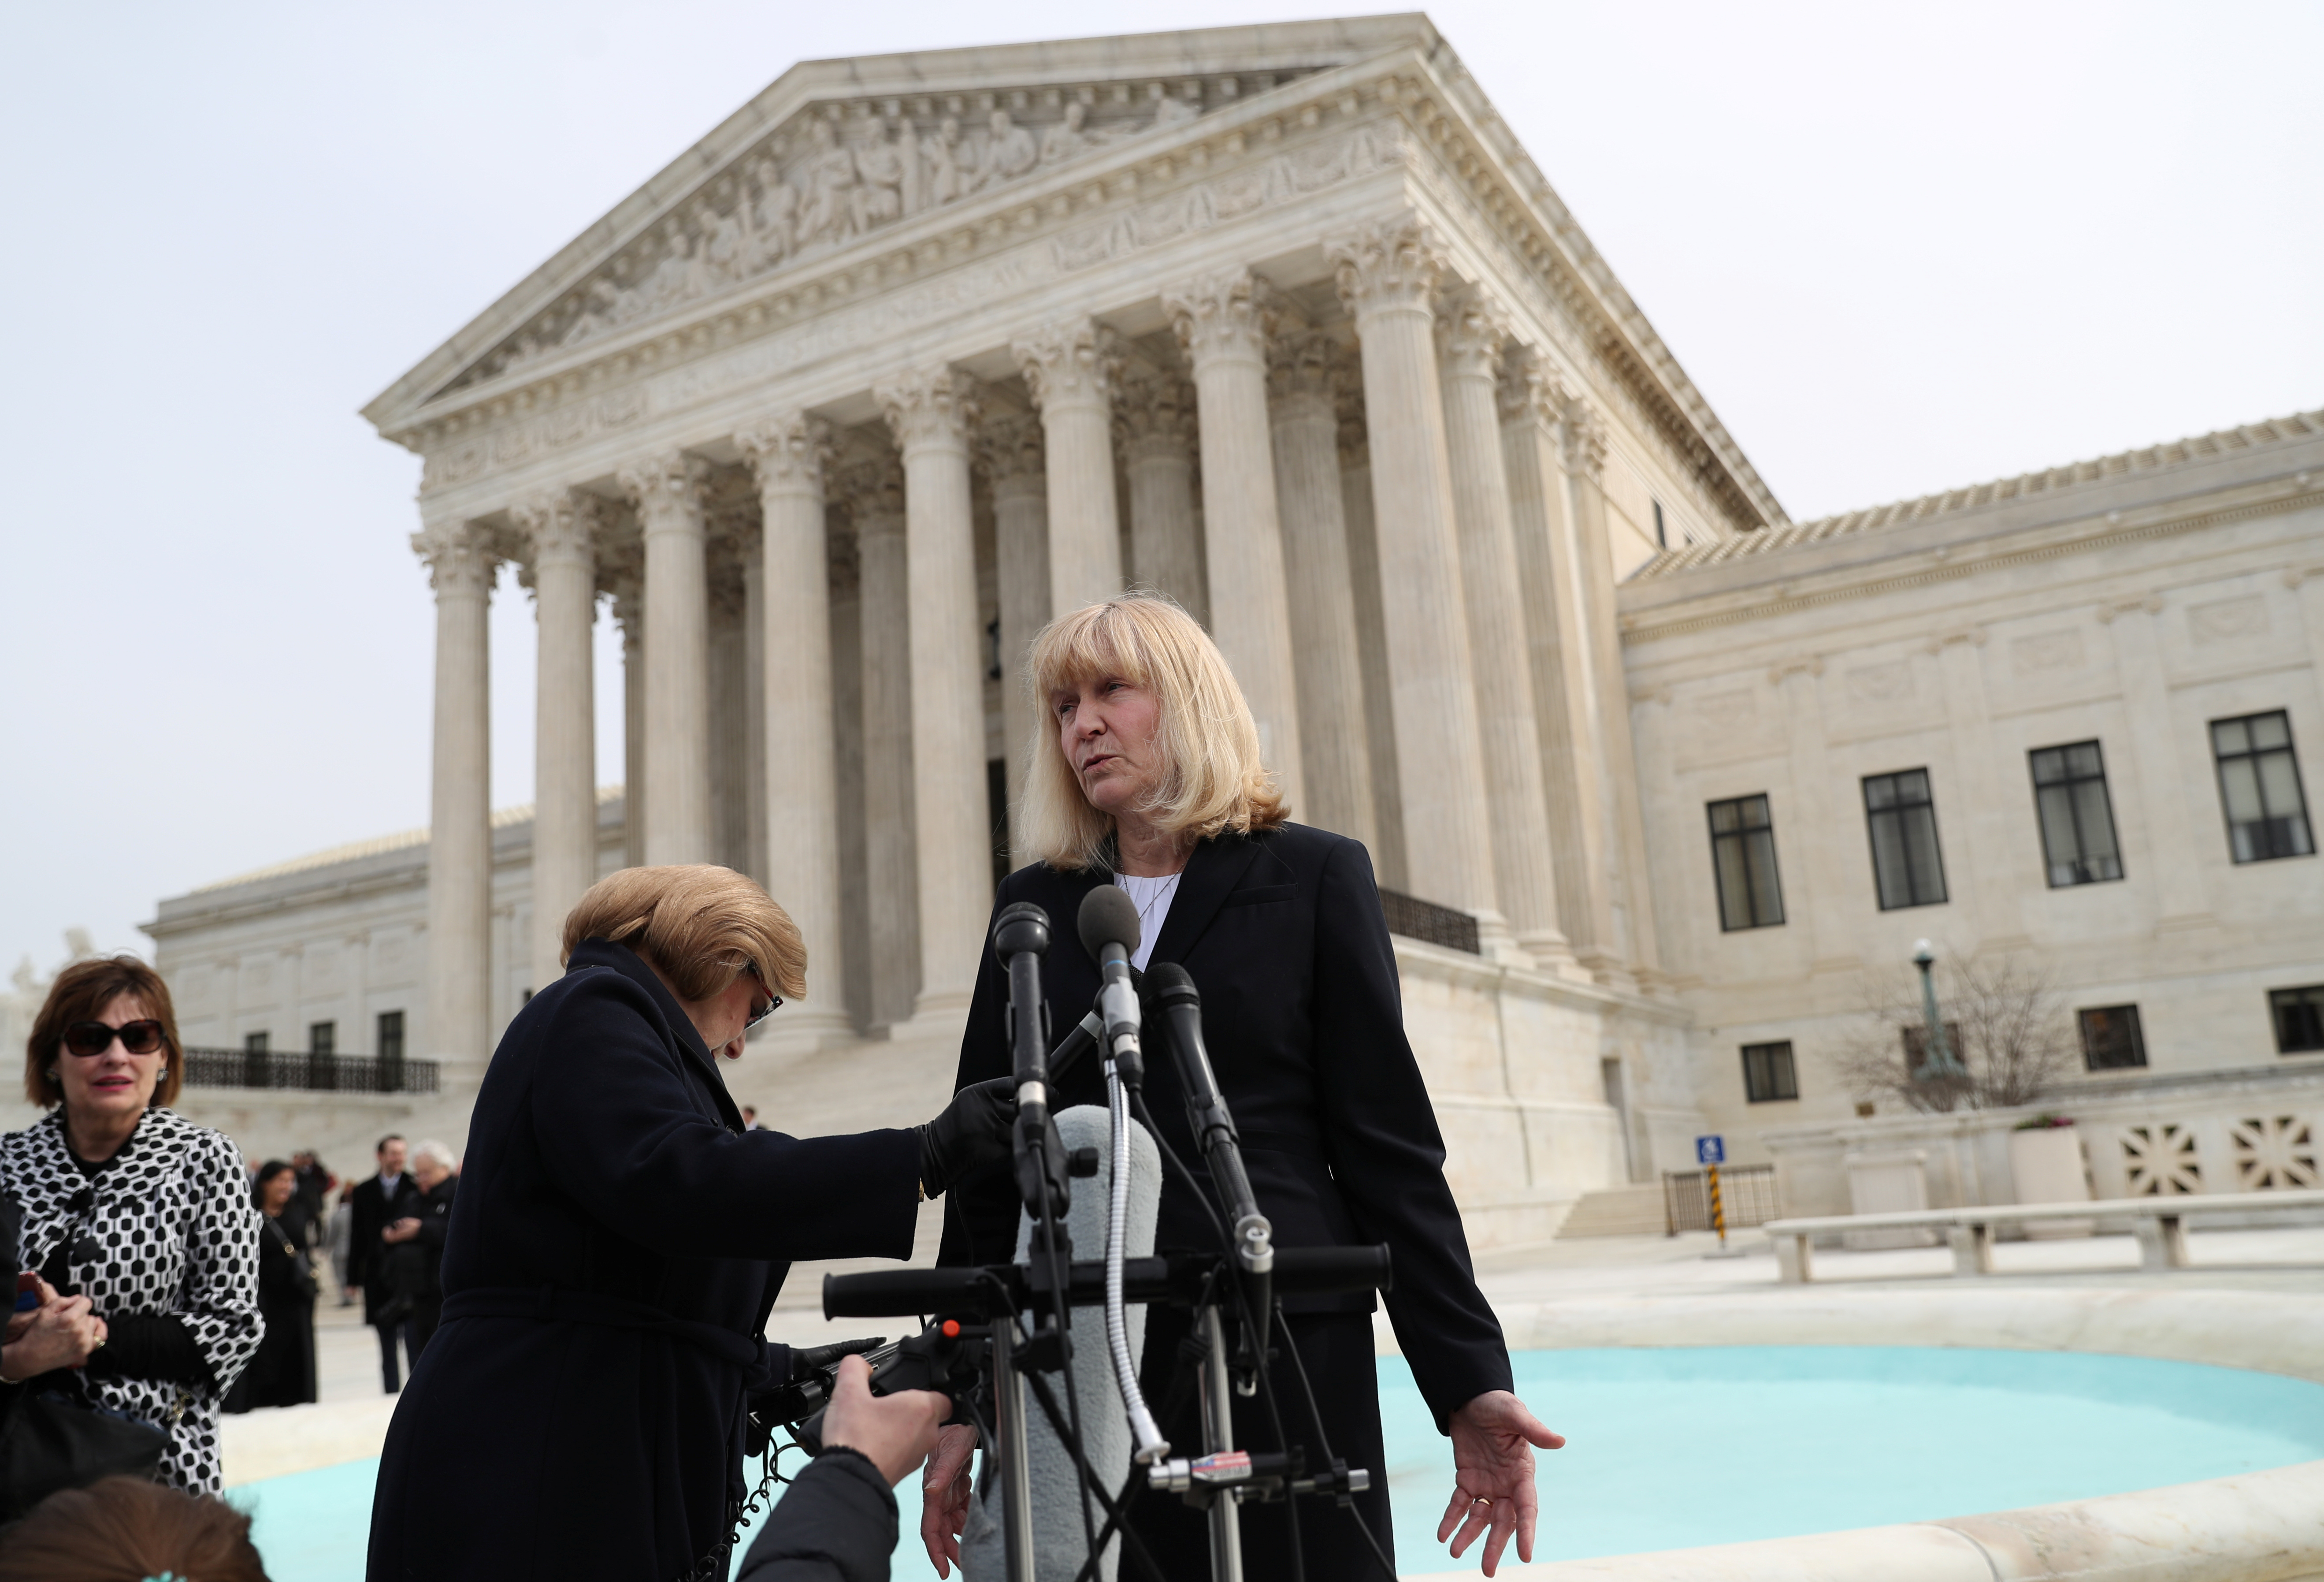 Sheri Lynn Johnson of the Cornell University Death Penalty Project, who represents Curtis Flowers, speaks to the news media outside of the Supreme Court on March 20, 2019. (REUTERS/Leah Millis)